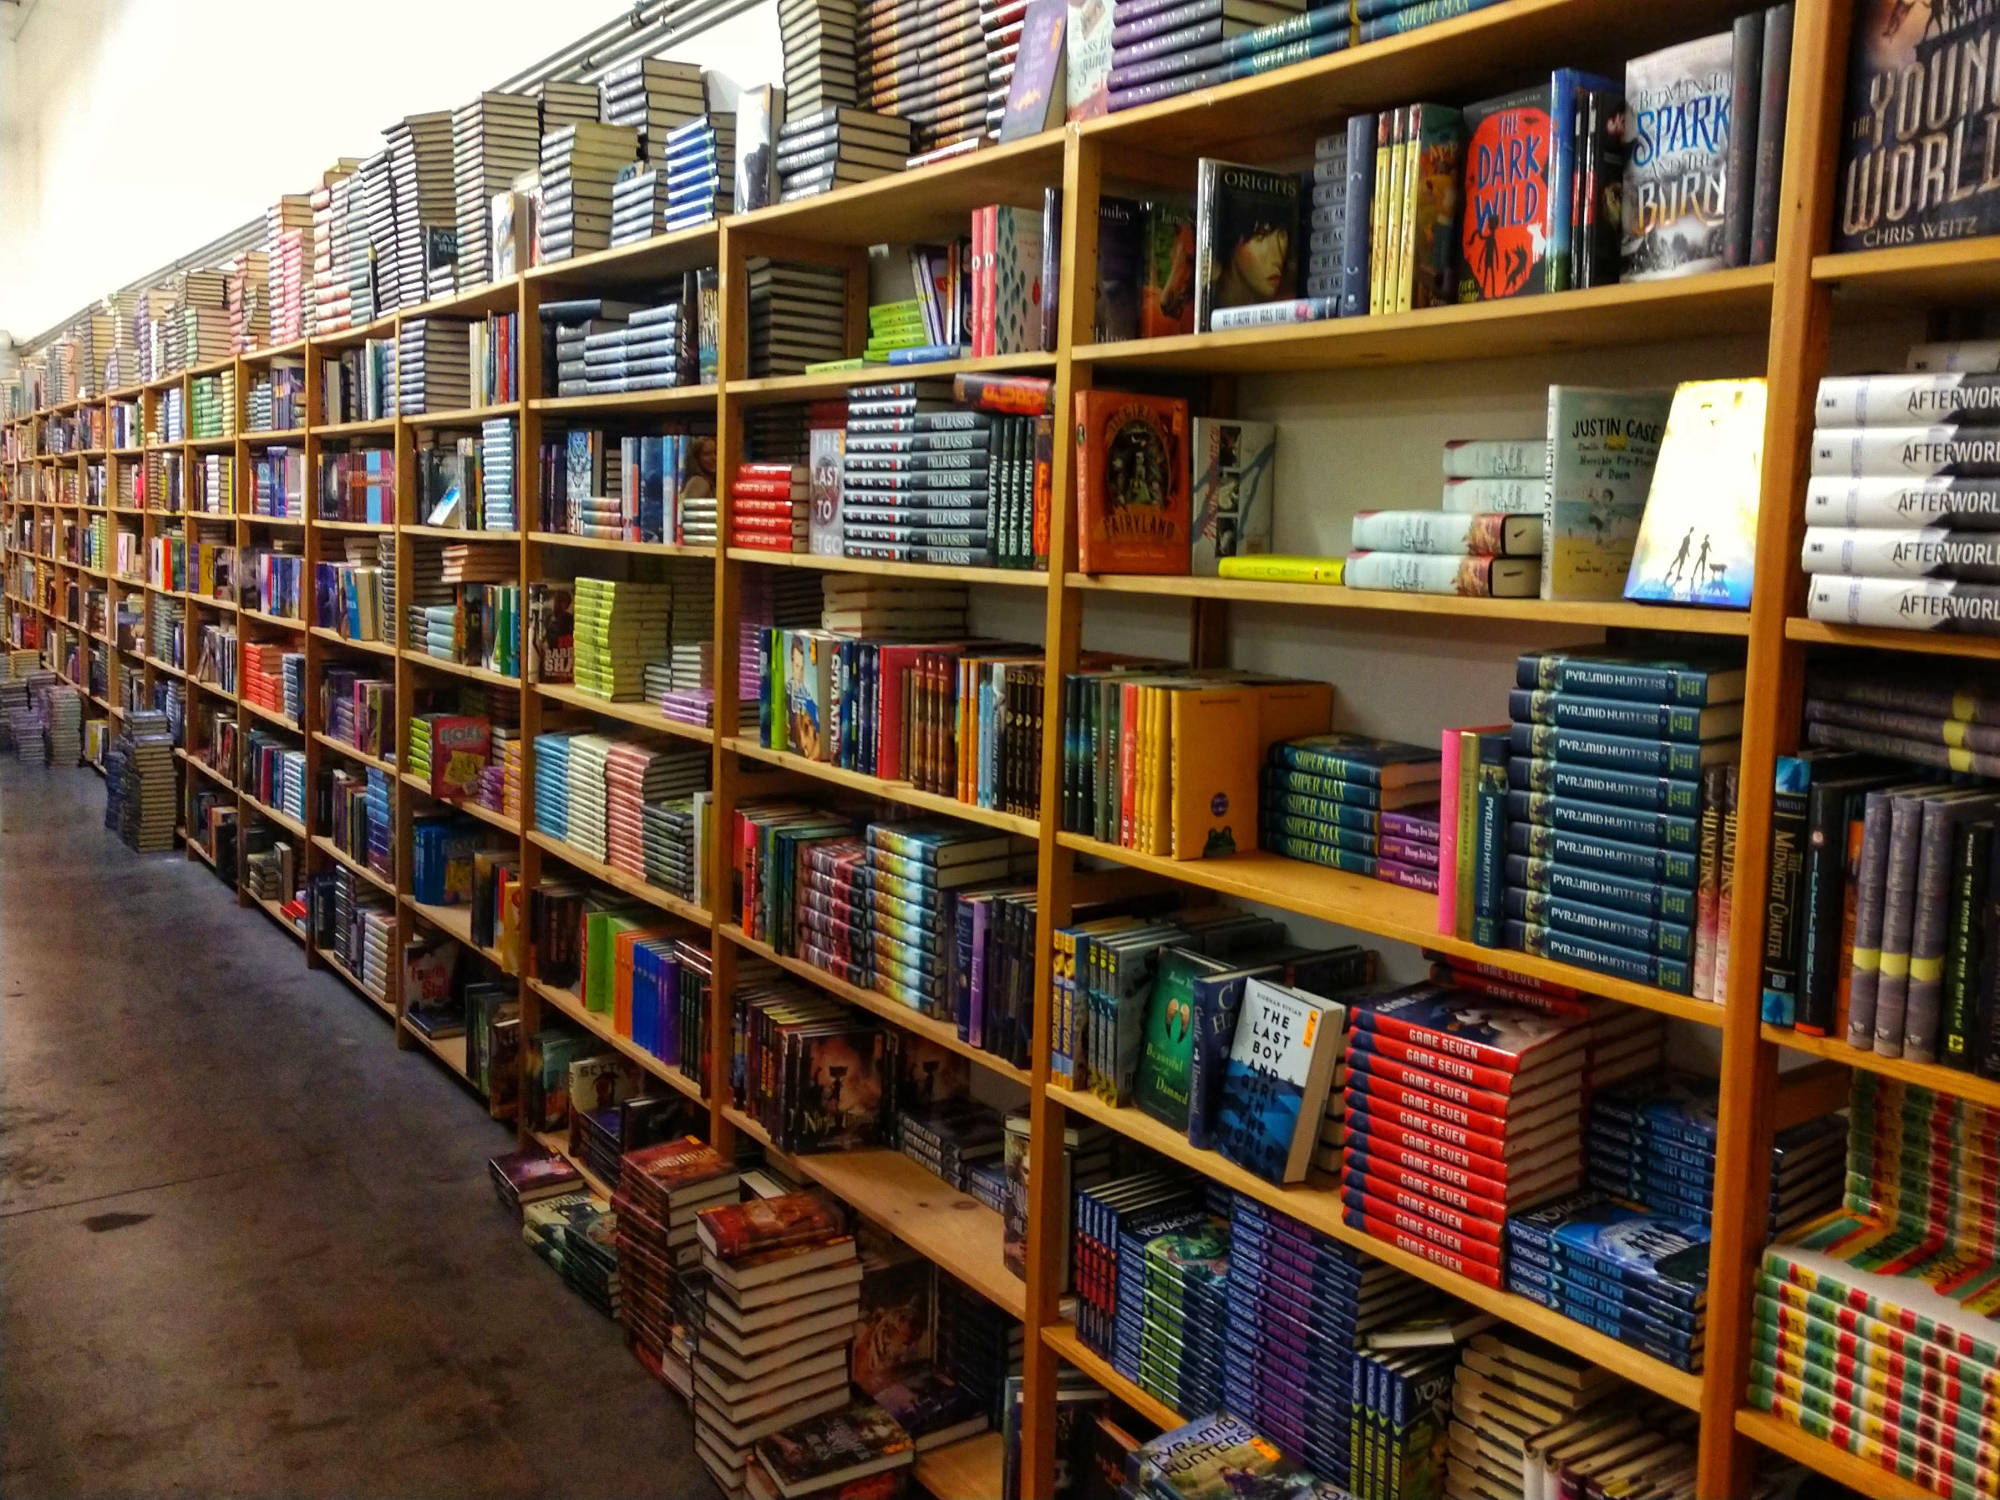 Wall of Hardback Fiction Bookshelves